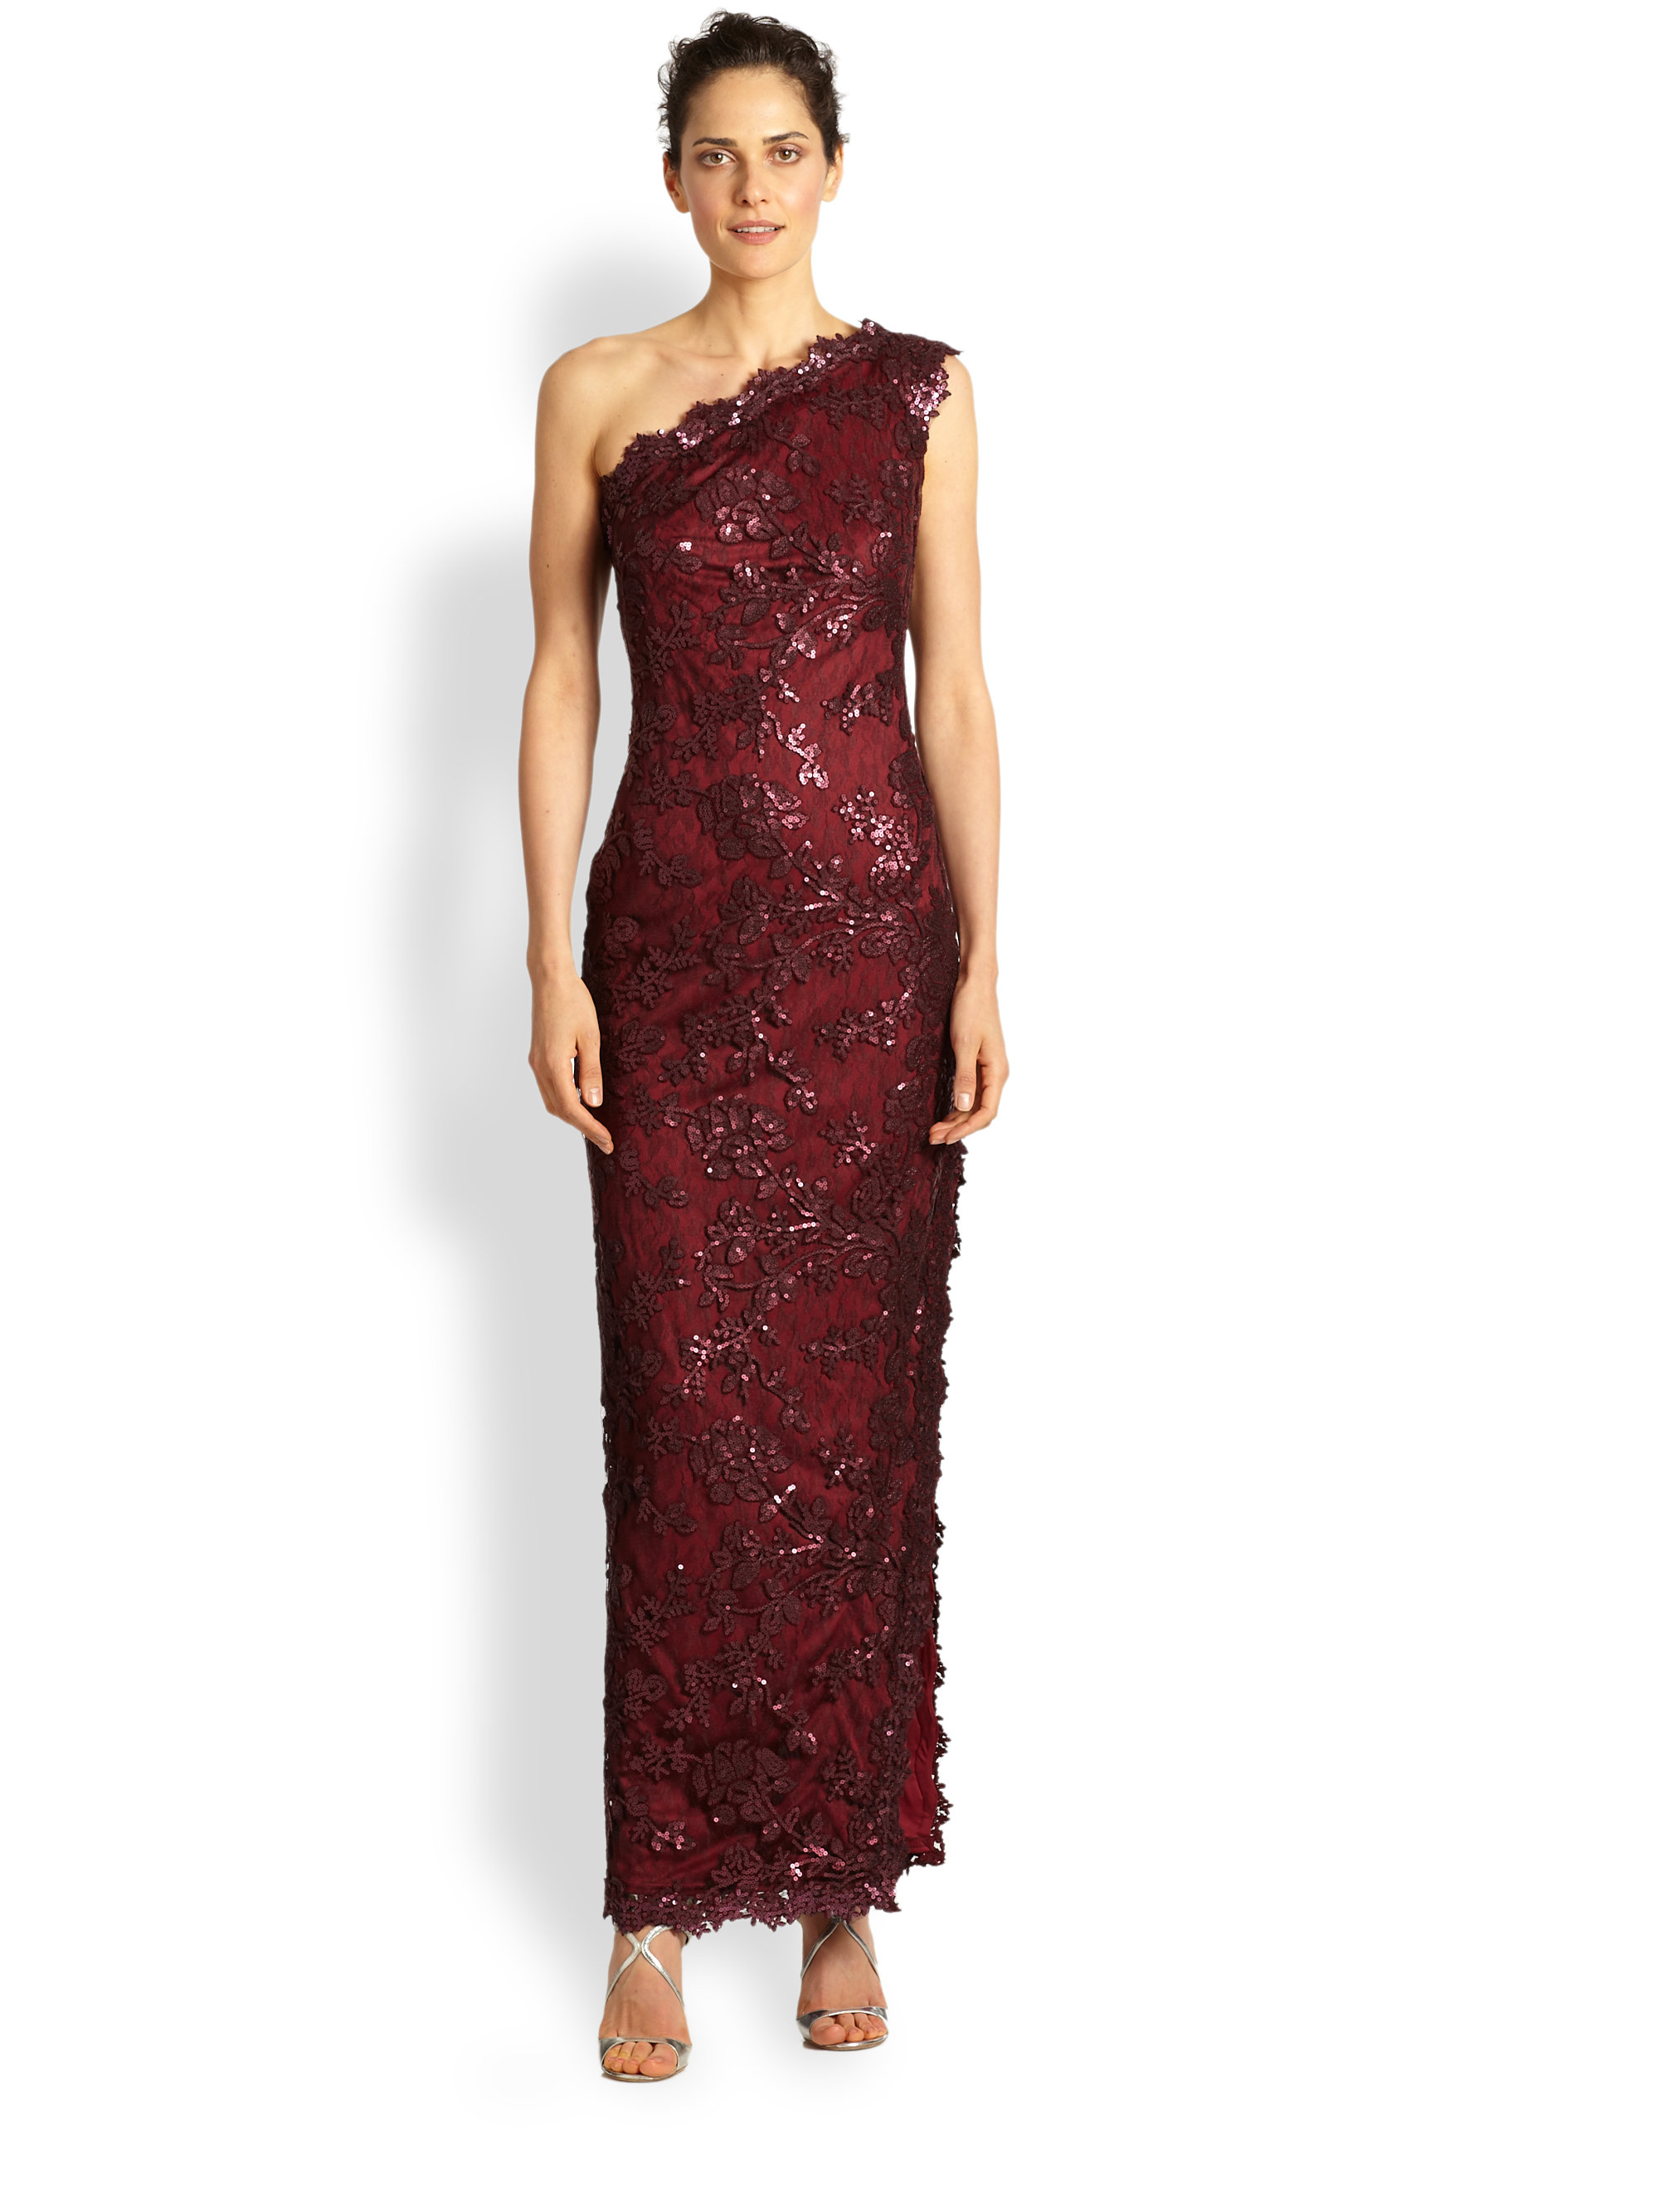 Tadashi shoji One-shoulder Lace/sequin Dress in Red | Lyst